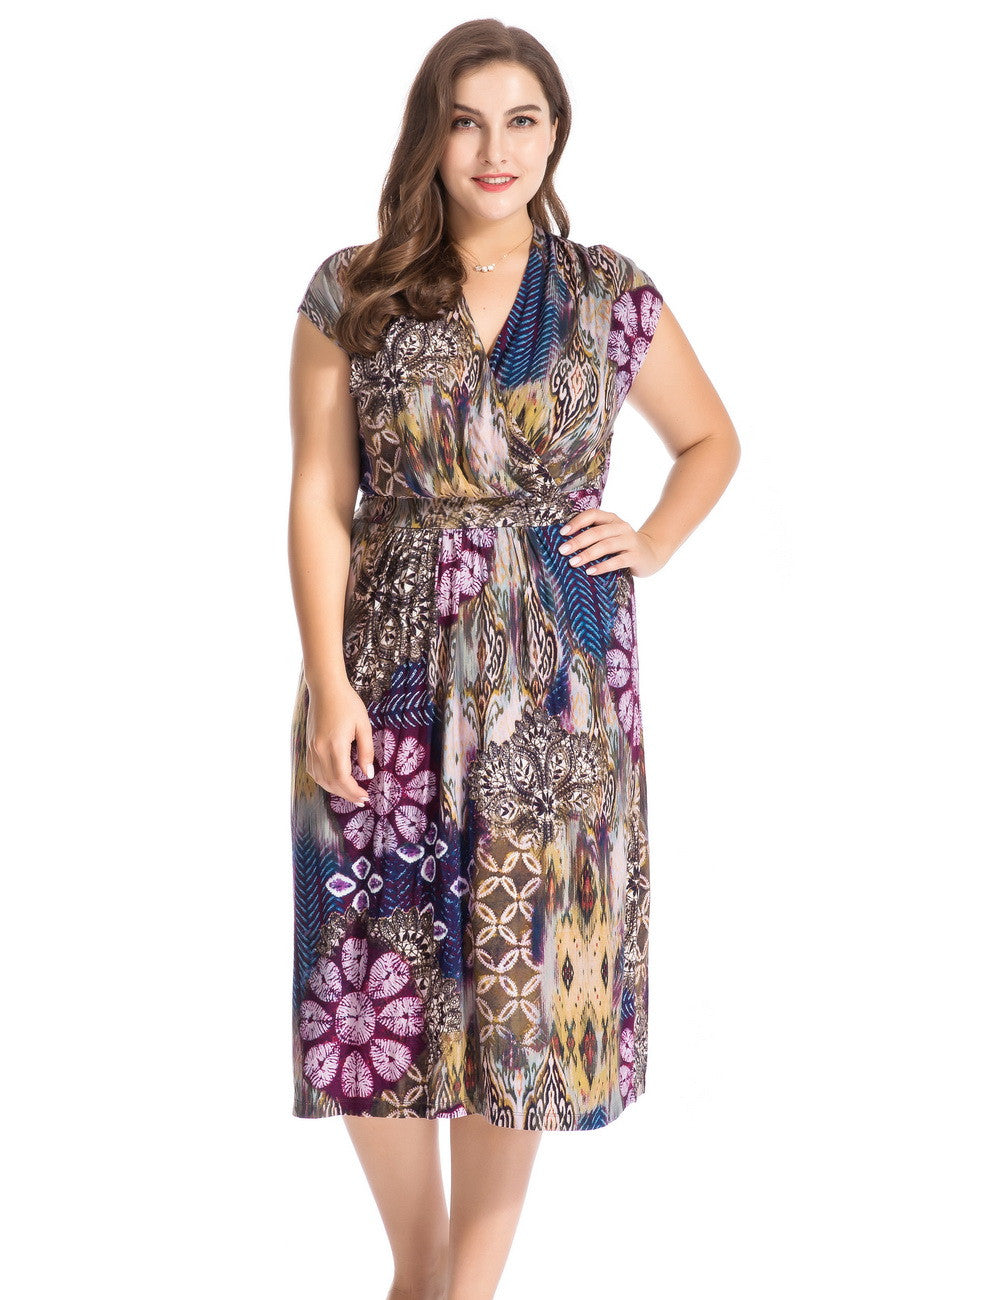 Chicwe Women's Plus Size Floral Printed Dress Cap Sleeves with Waist Belt US16-26